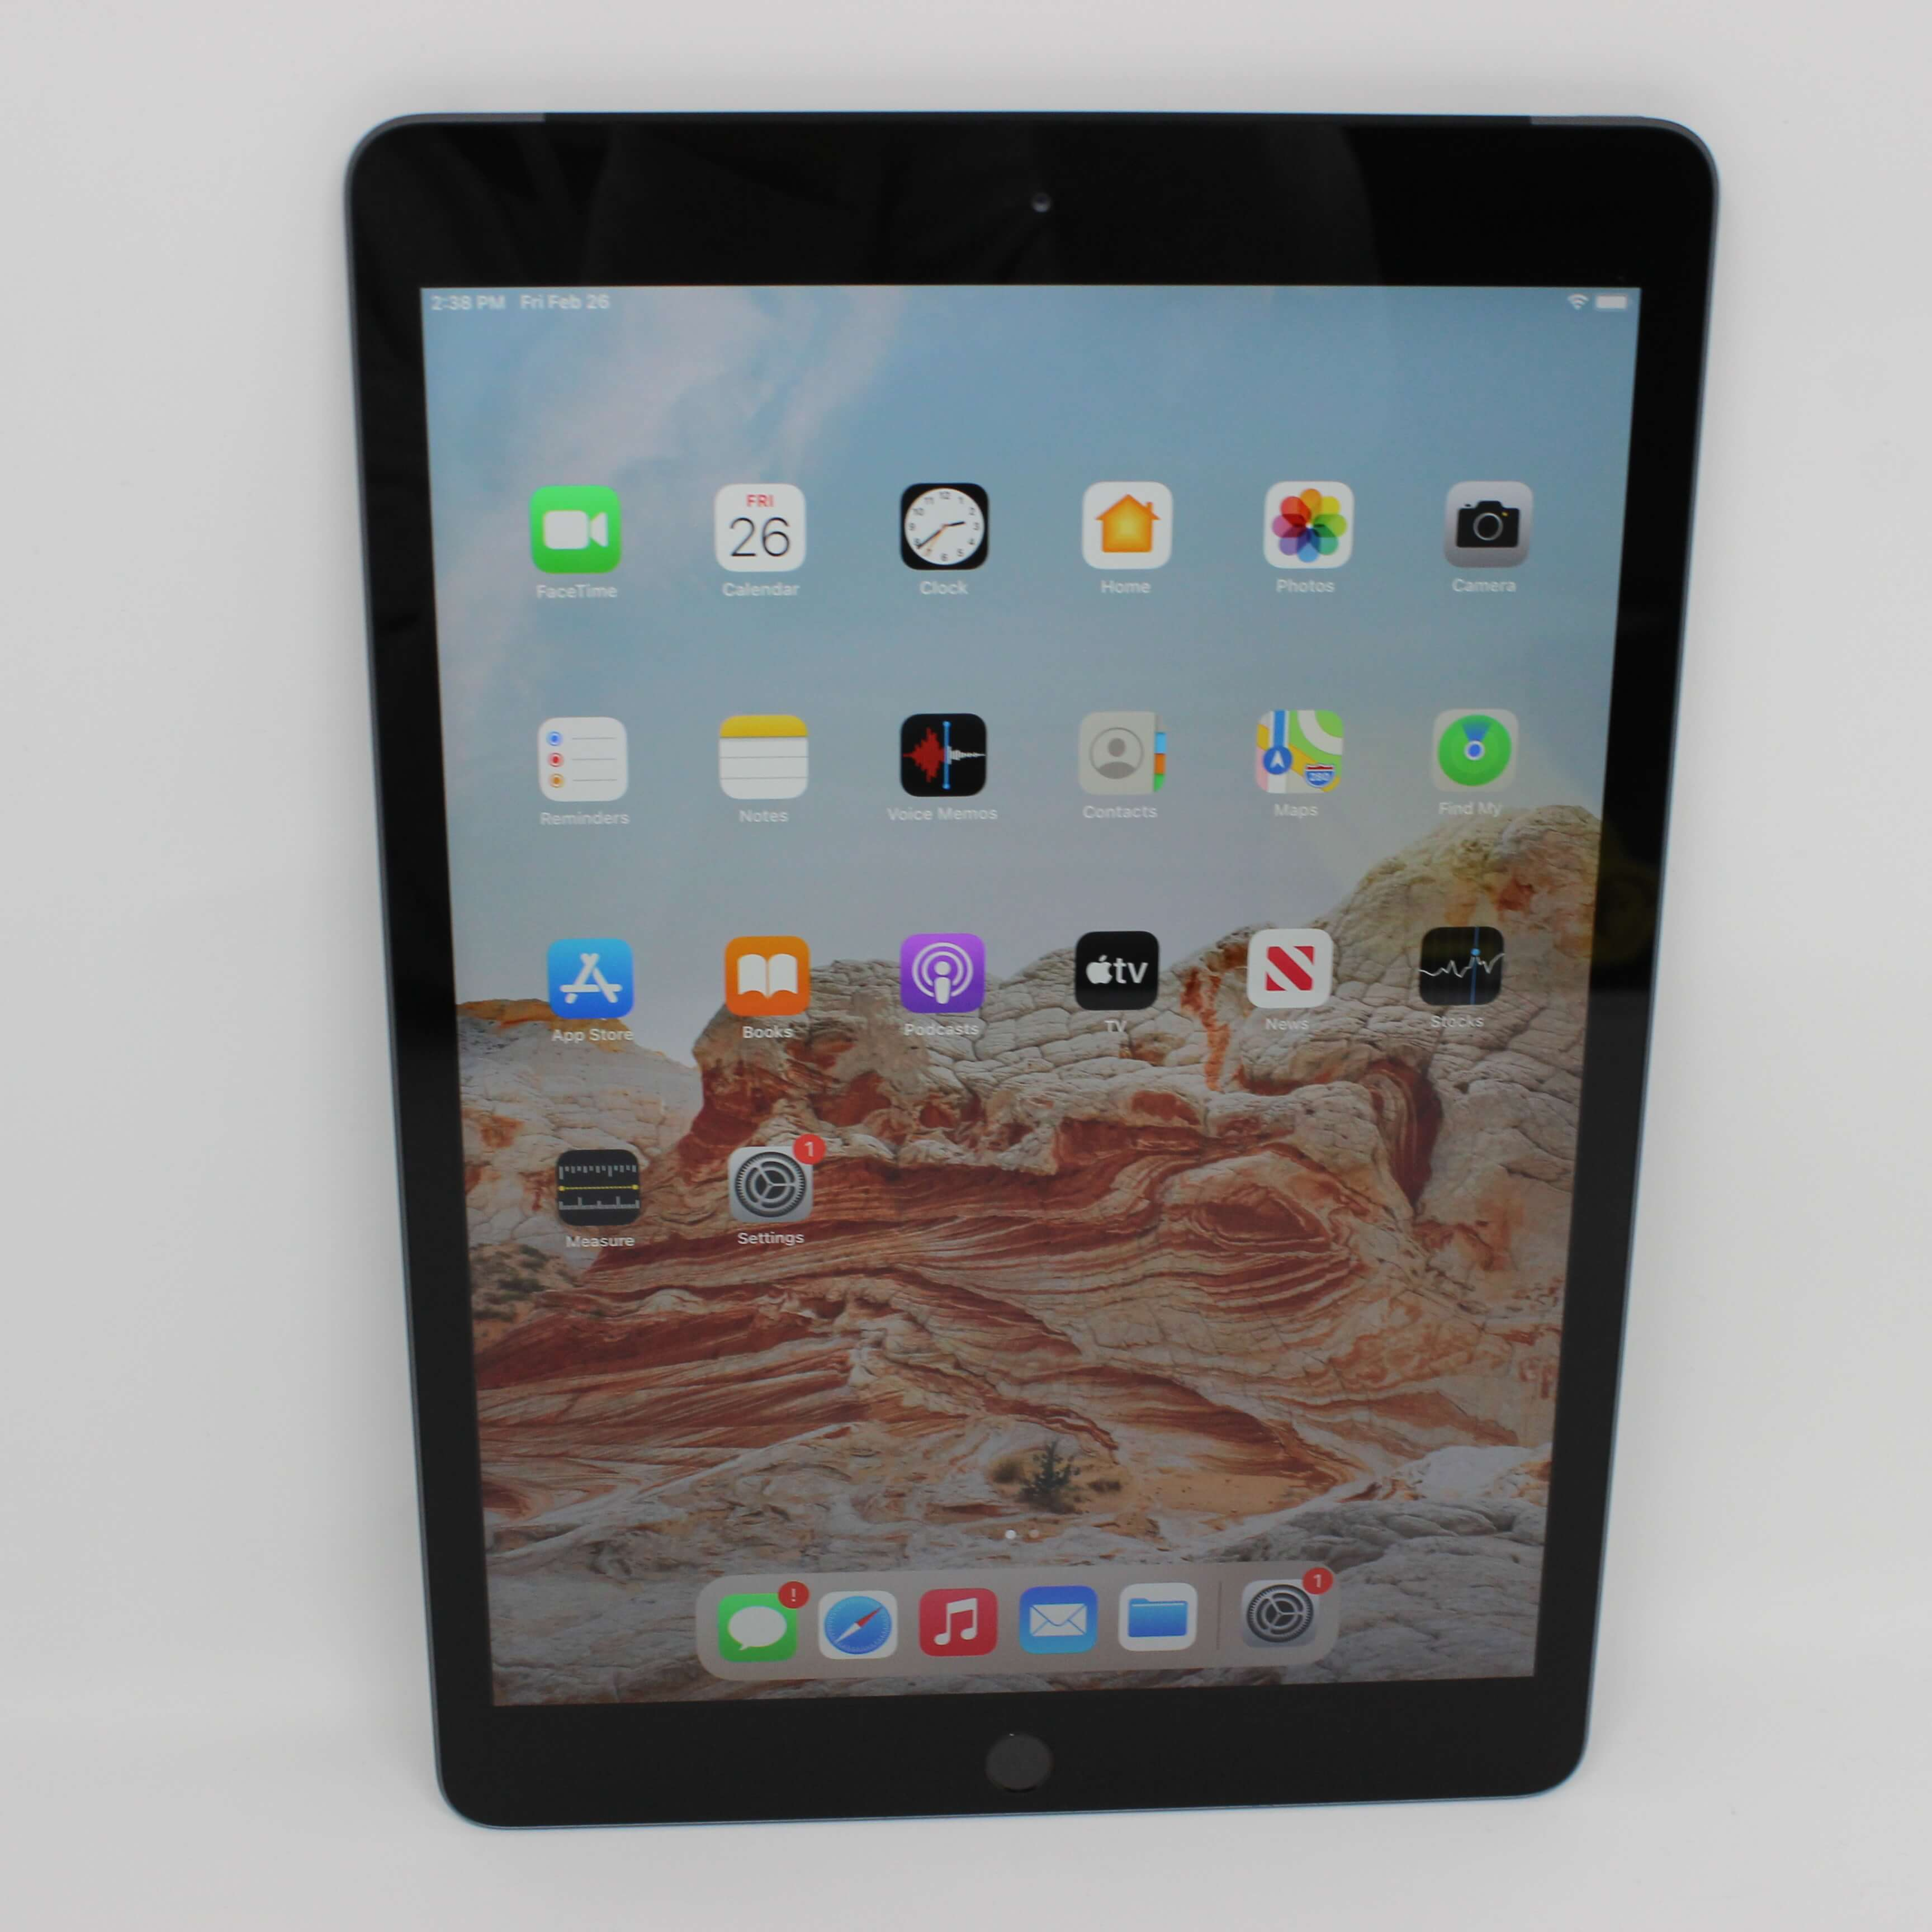 iPad 10.2 inch (2020) WIFI+Cellular 32GB Space Gray - Unlocked - (Certified Used)